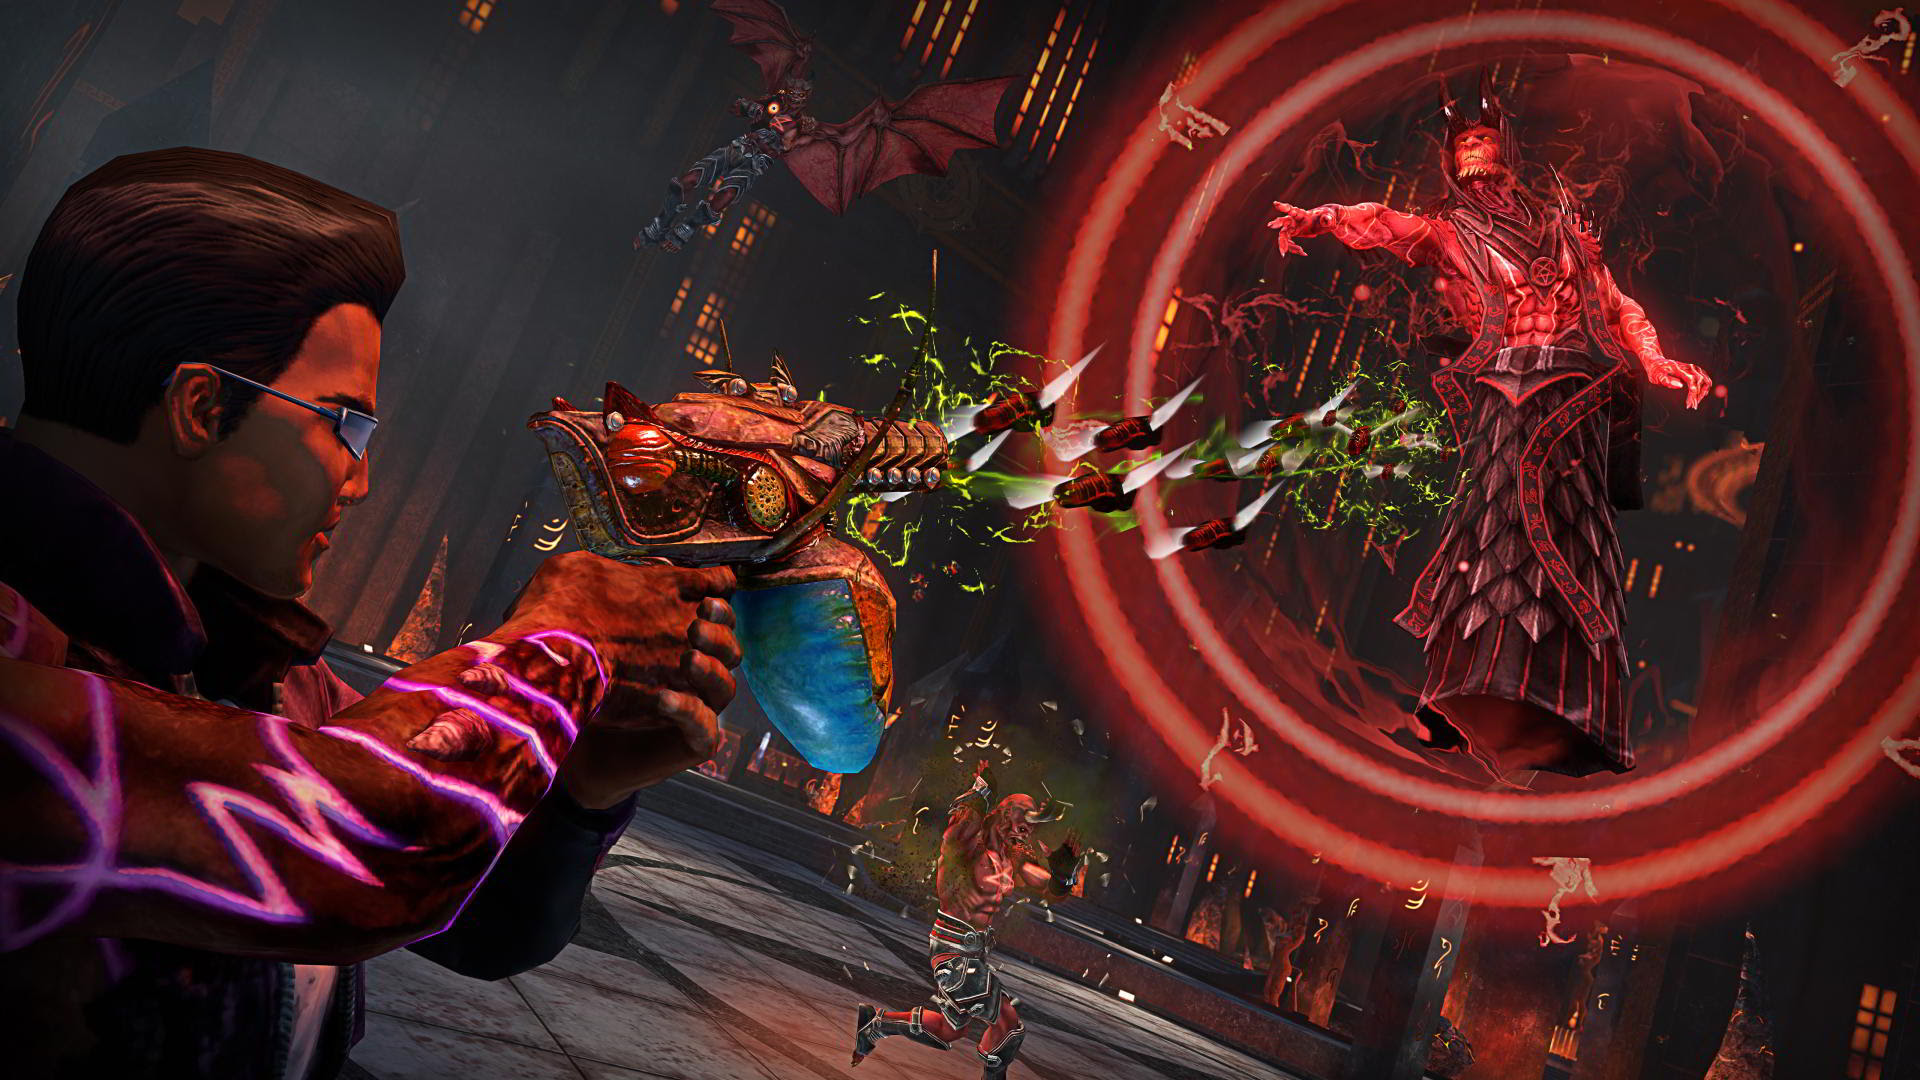 Saints Row Gat Out Of Hell Puts The Devil In The Details